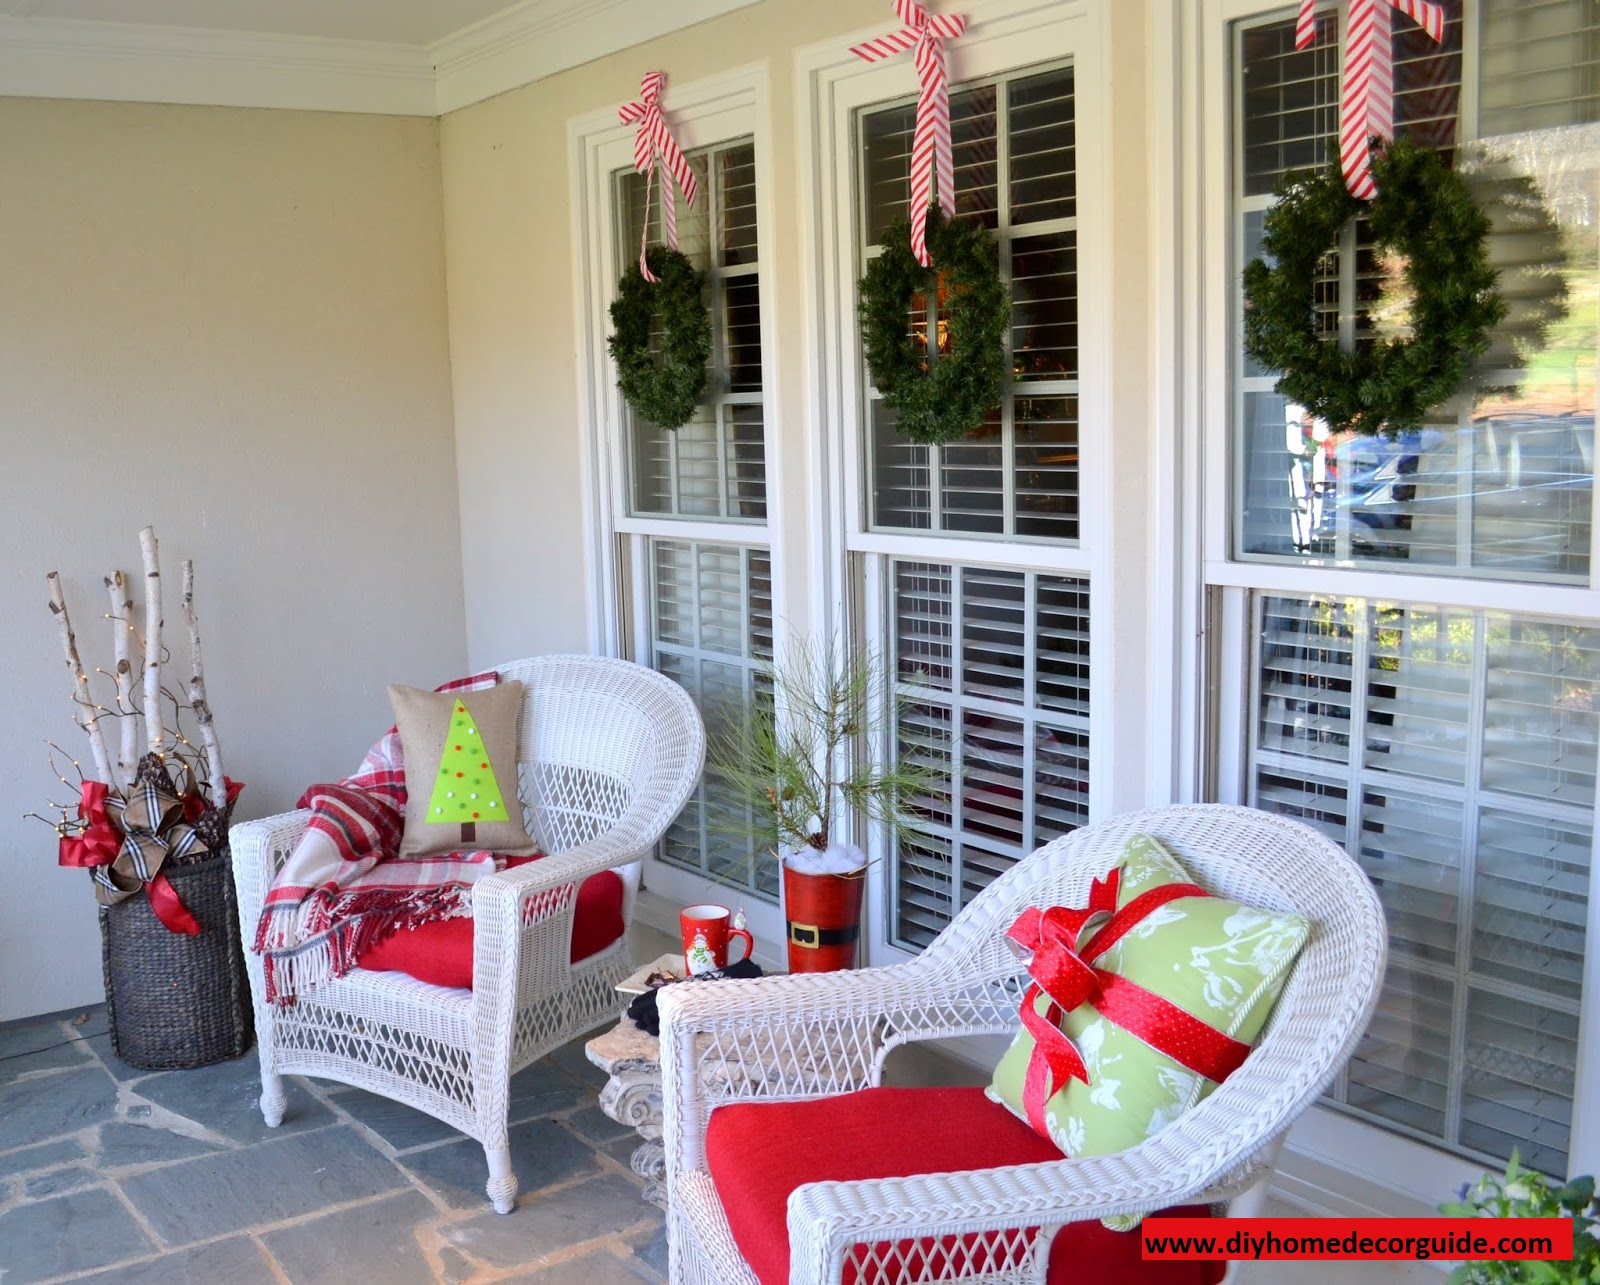 20 diy outdoor christmas decorations ideas 2014 Christmas decorations for house outside ideas